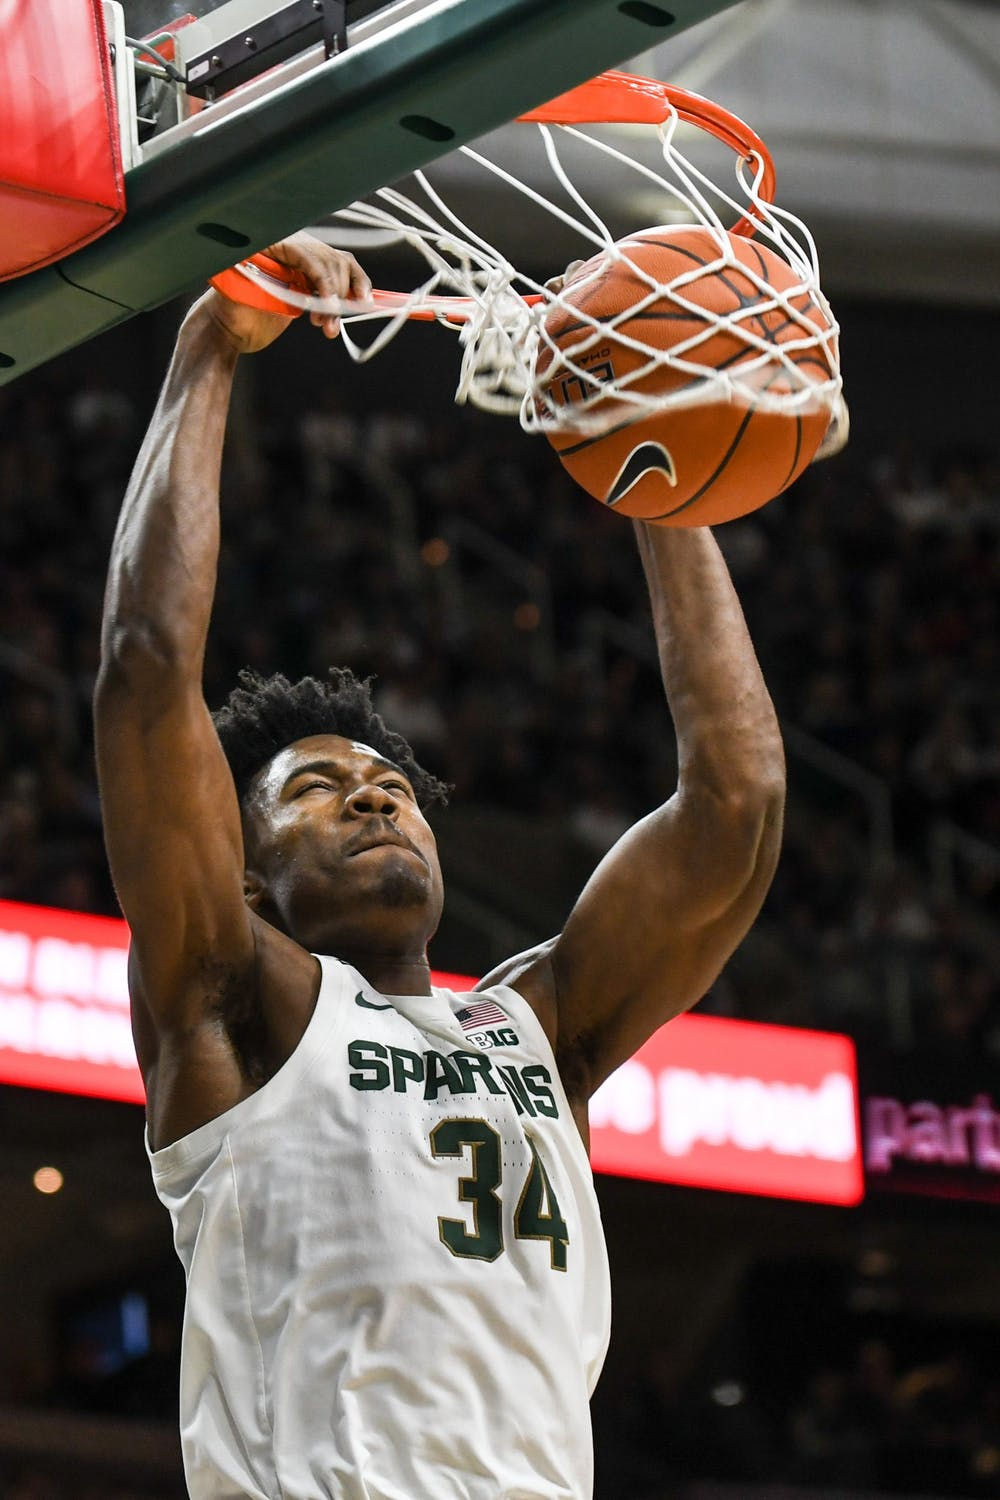 <p>Freshman forward Julius Marble (34) dunks during the game against Eastern Michigan on Dec. 21, 2019 at the Breslin Center. The Spartans defeated the Eagles, 101-48.</p>